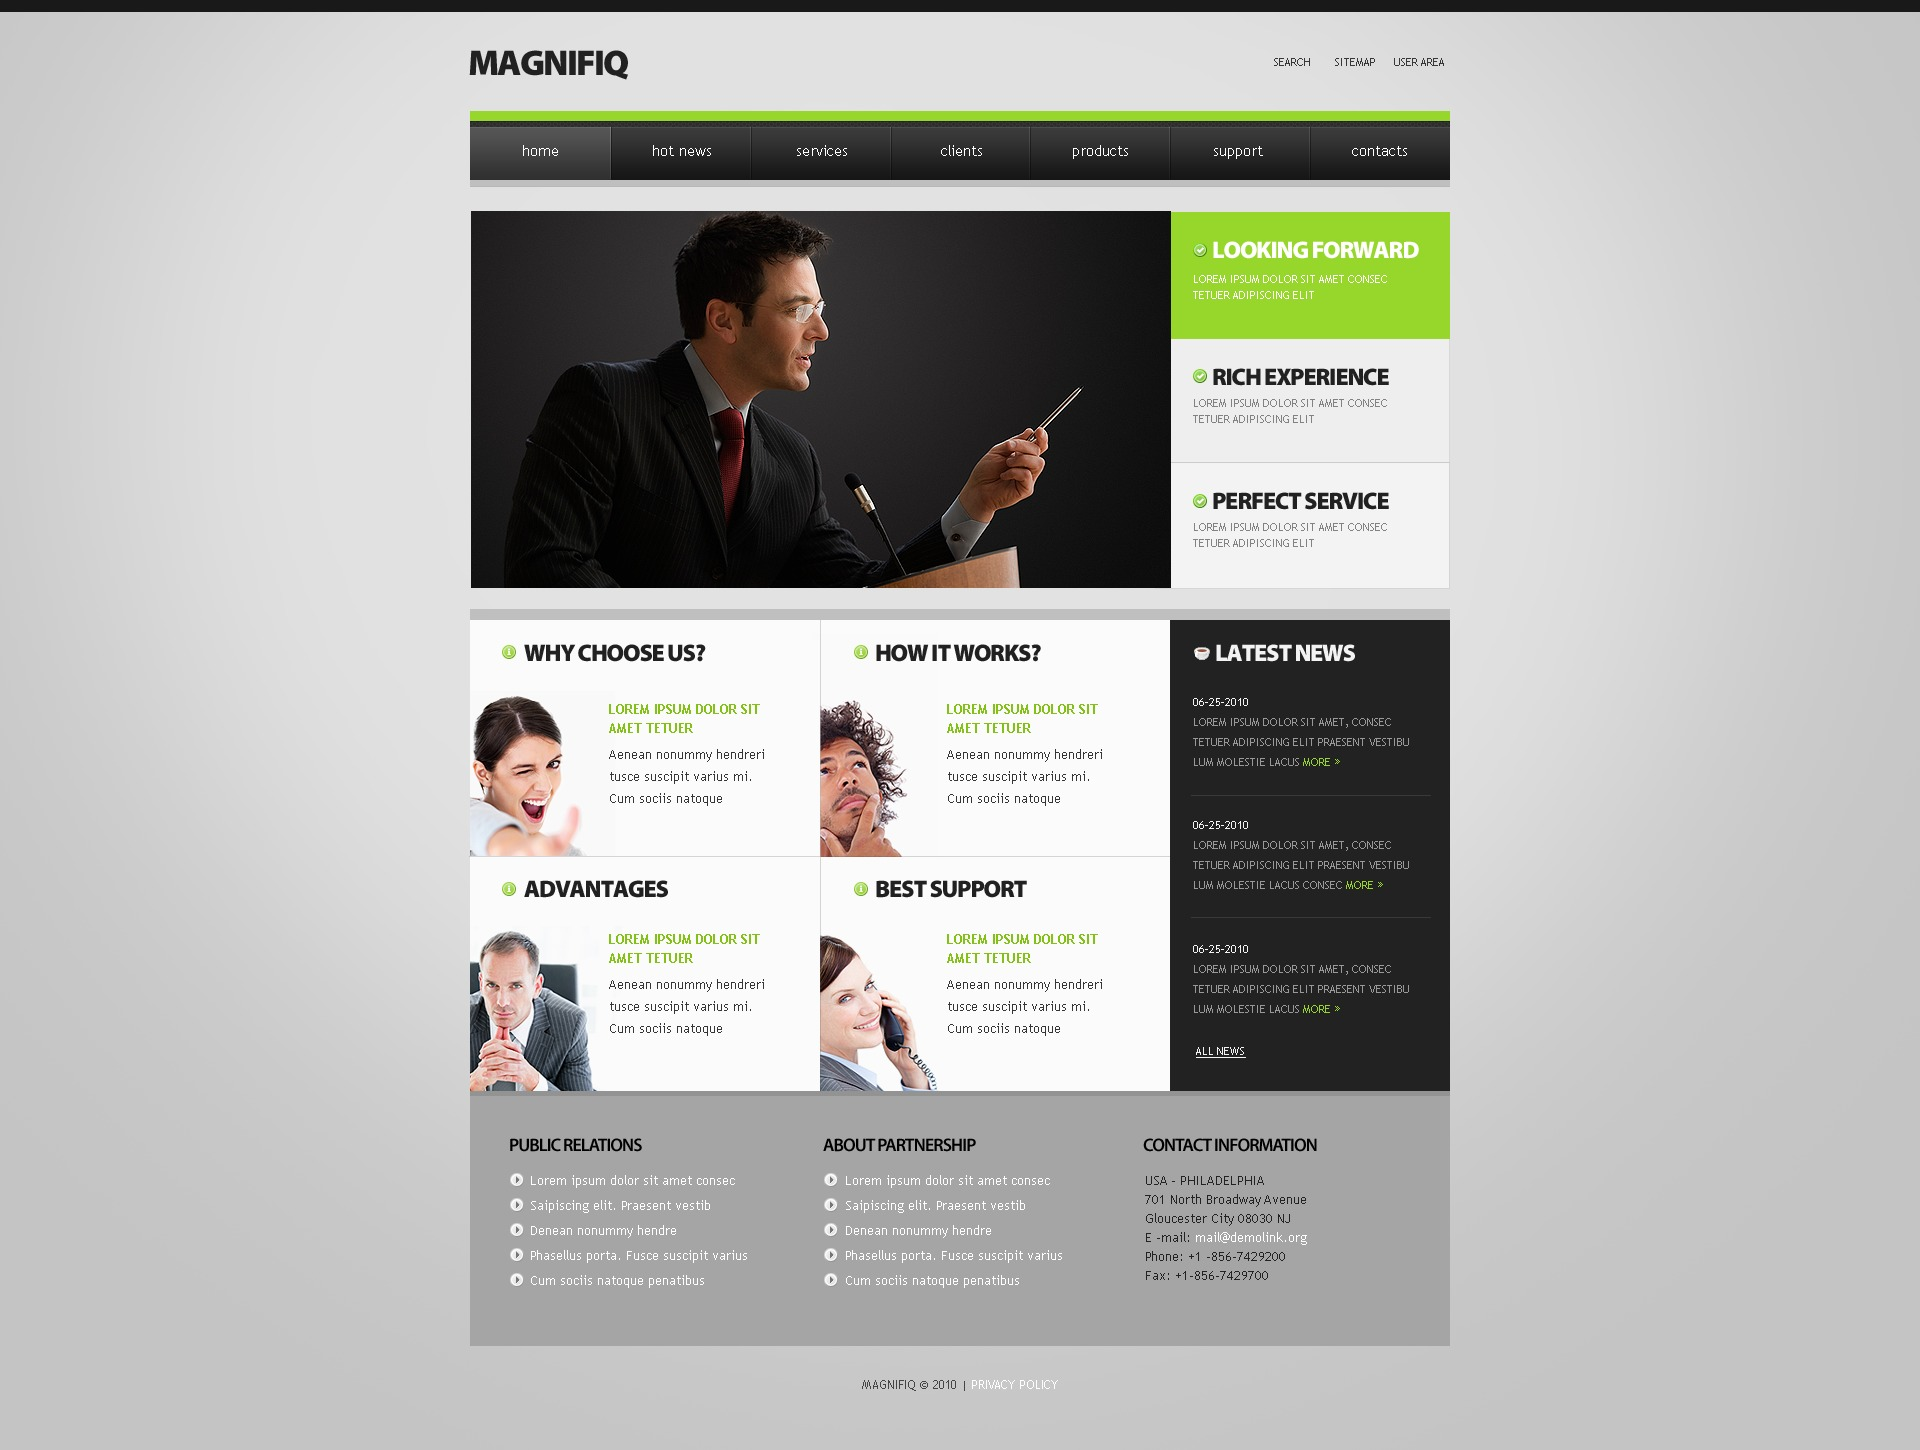 The Magnifiq Business Company PSD Design 54103, one of the best PSD templates of its kind (business, wide, jquery), also known as magnifiq business company PSD template, corporate solutions PSD template, innovations PSD template, contacts PSD template, service PSD template, support PSD template, information dealer PSD template, stocks PSD template, team PSD template, success PSD template, money PSD template, marketing PSD template, director PSD template, manager PSD template, analytics PSD template, planning PSD template, limited PSD template, office PSD template, sales and related with magnifiq business company, corporate solutions, innovations, contacts, service, support, information dealer, stocks, team, success, money, marketing, director, manager, analytics, planning, limited, office, sales, etc.